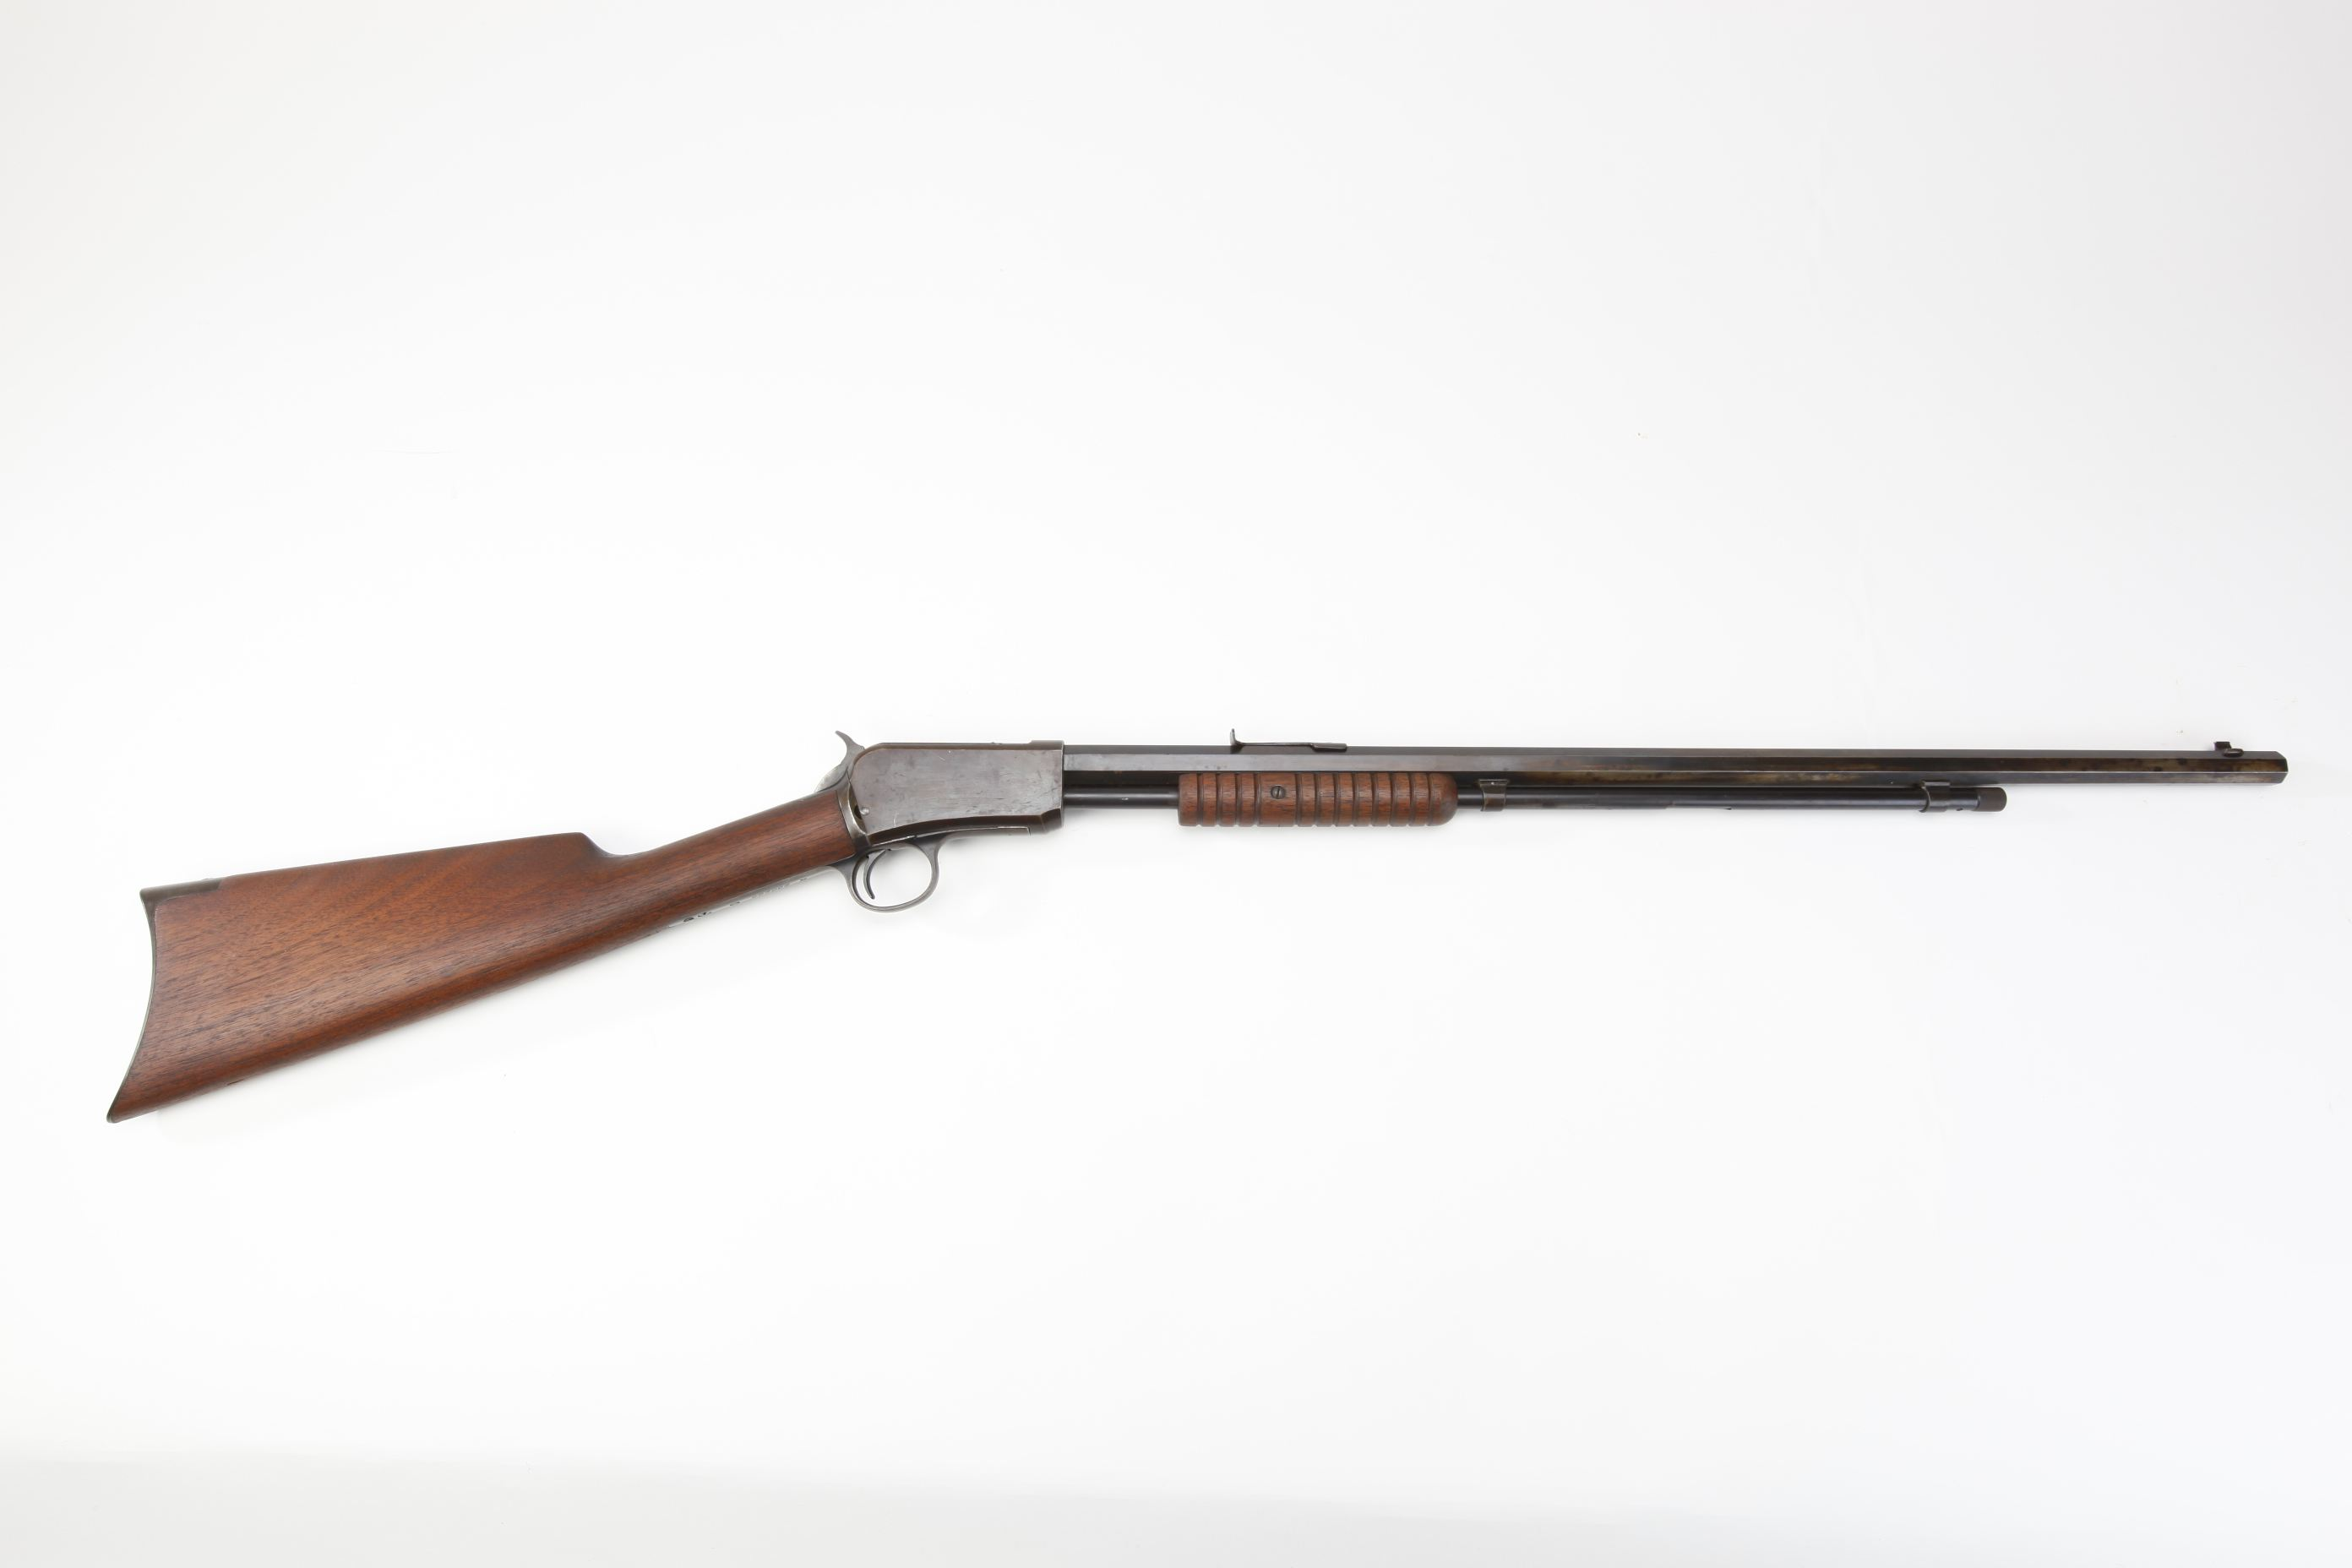 Winchester Model 1890 Slide Action Rifle (12)